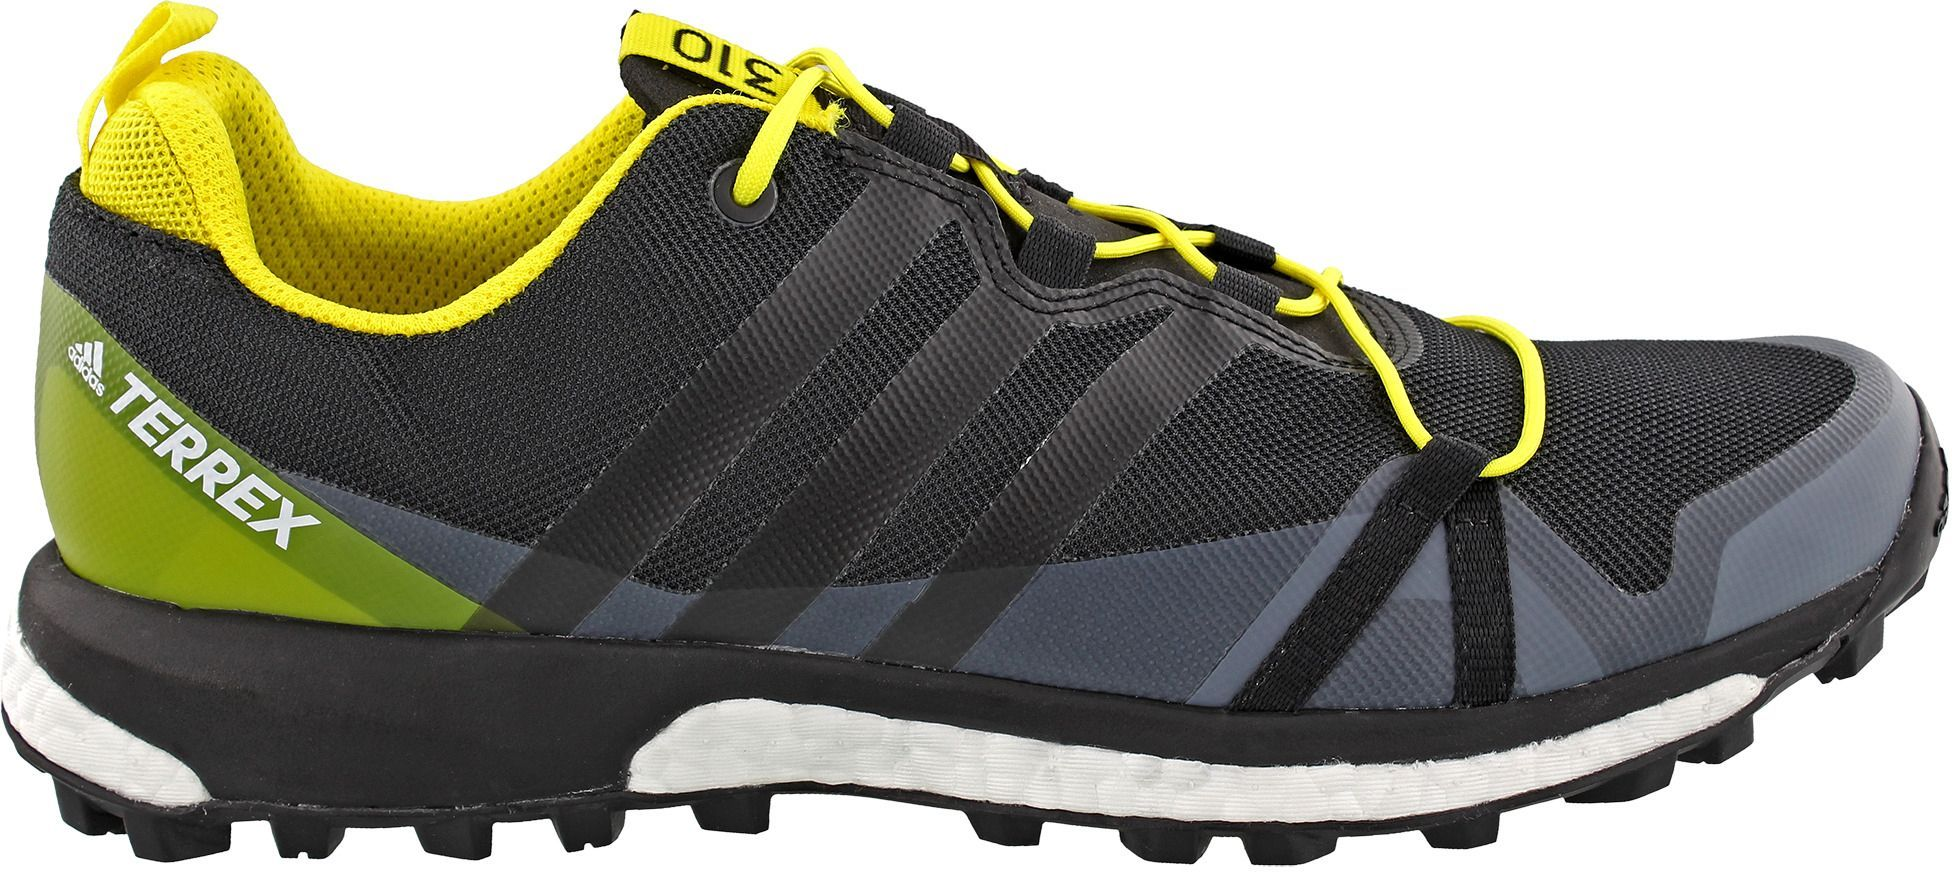 Homme Adidas Chaussure Outdoor, Unique Adidas Homme Agravic